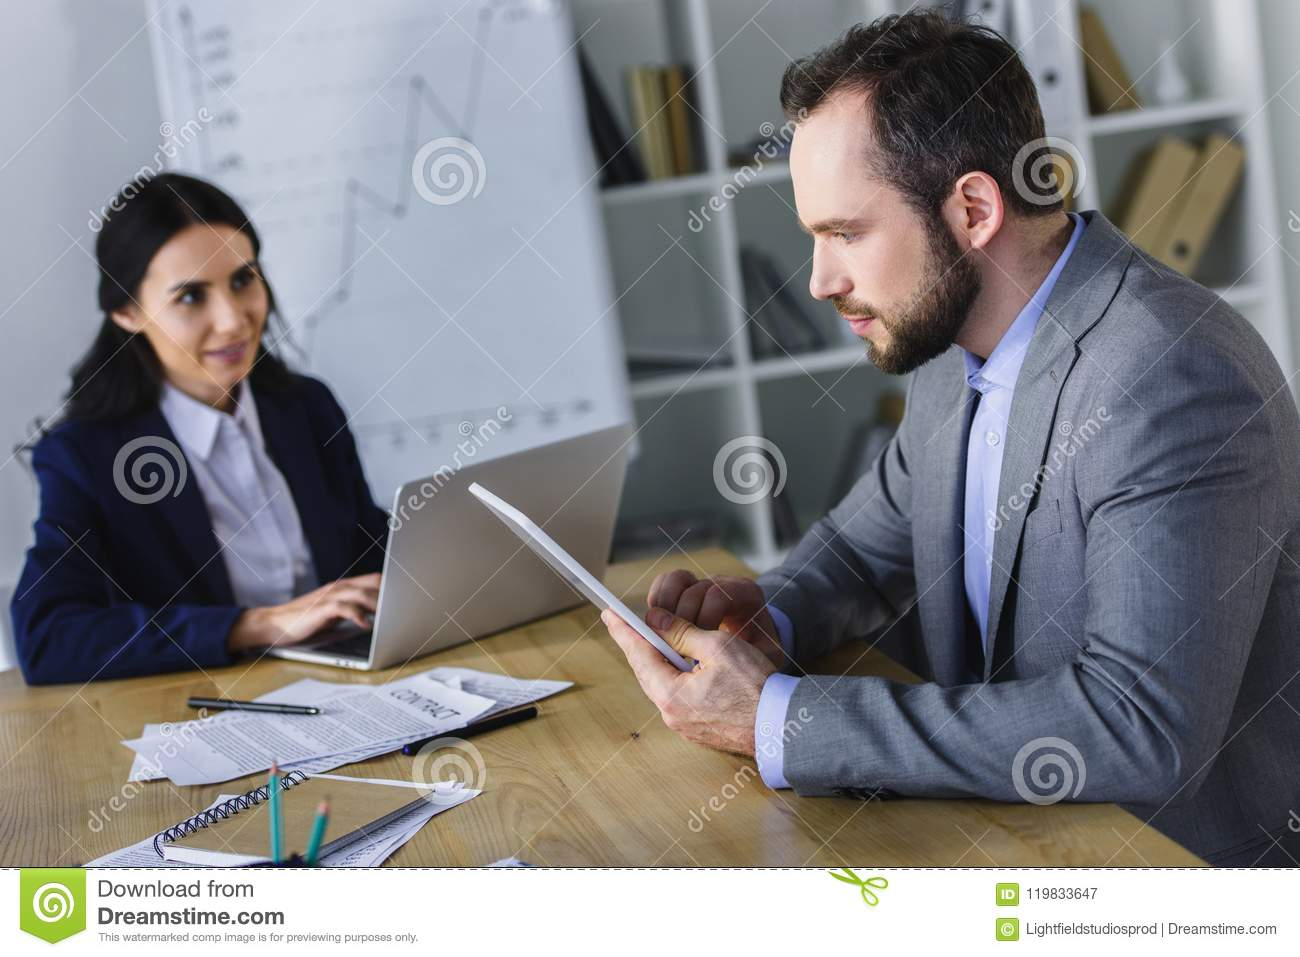 businesswoman and businessman working with laptop and tablet